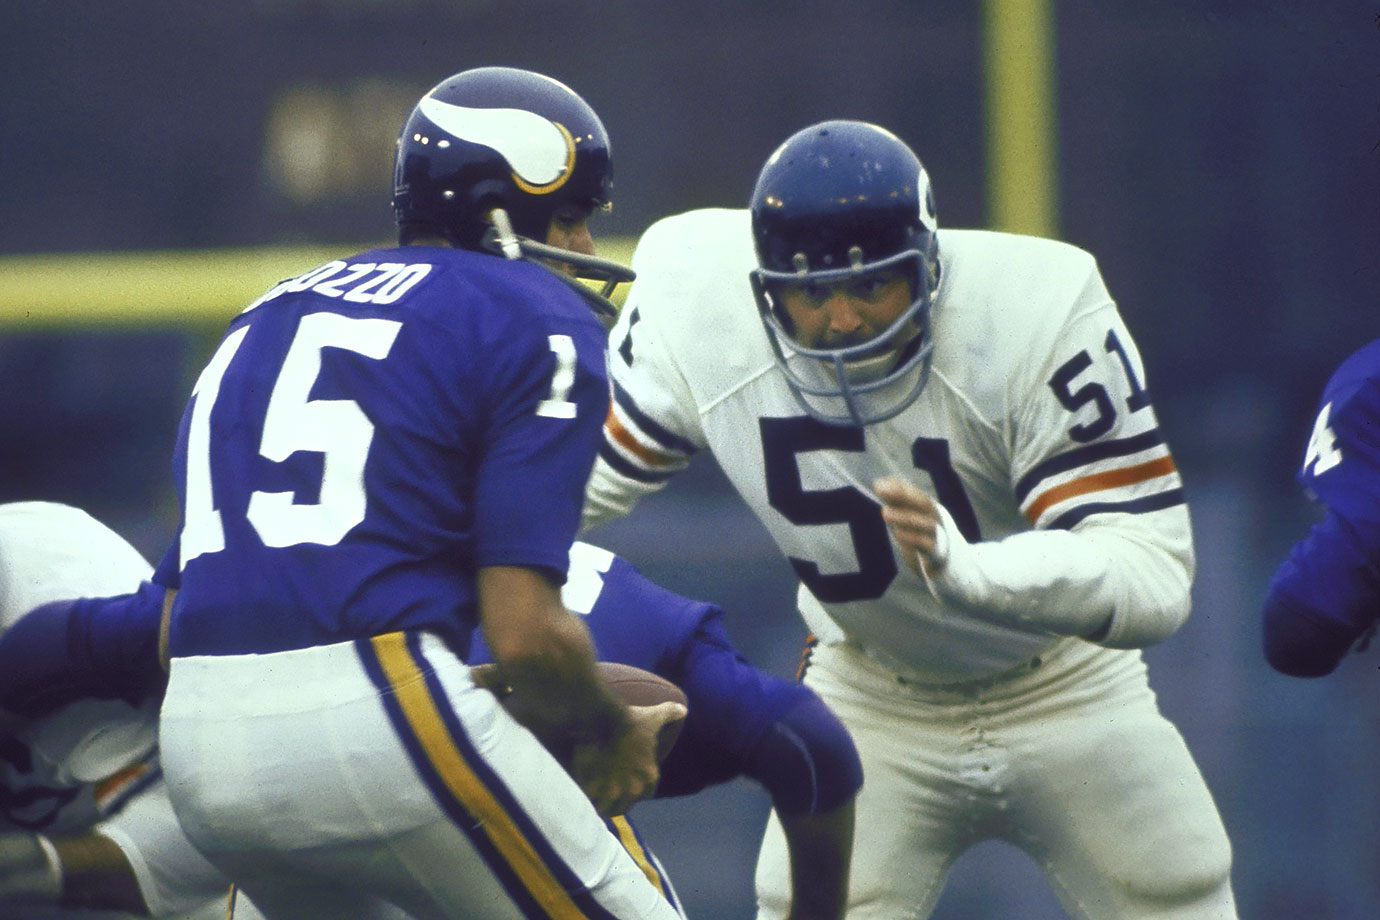 Sept. 26, 1971 — Chicago Bears vs. Minnesota Vikings